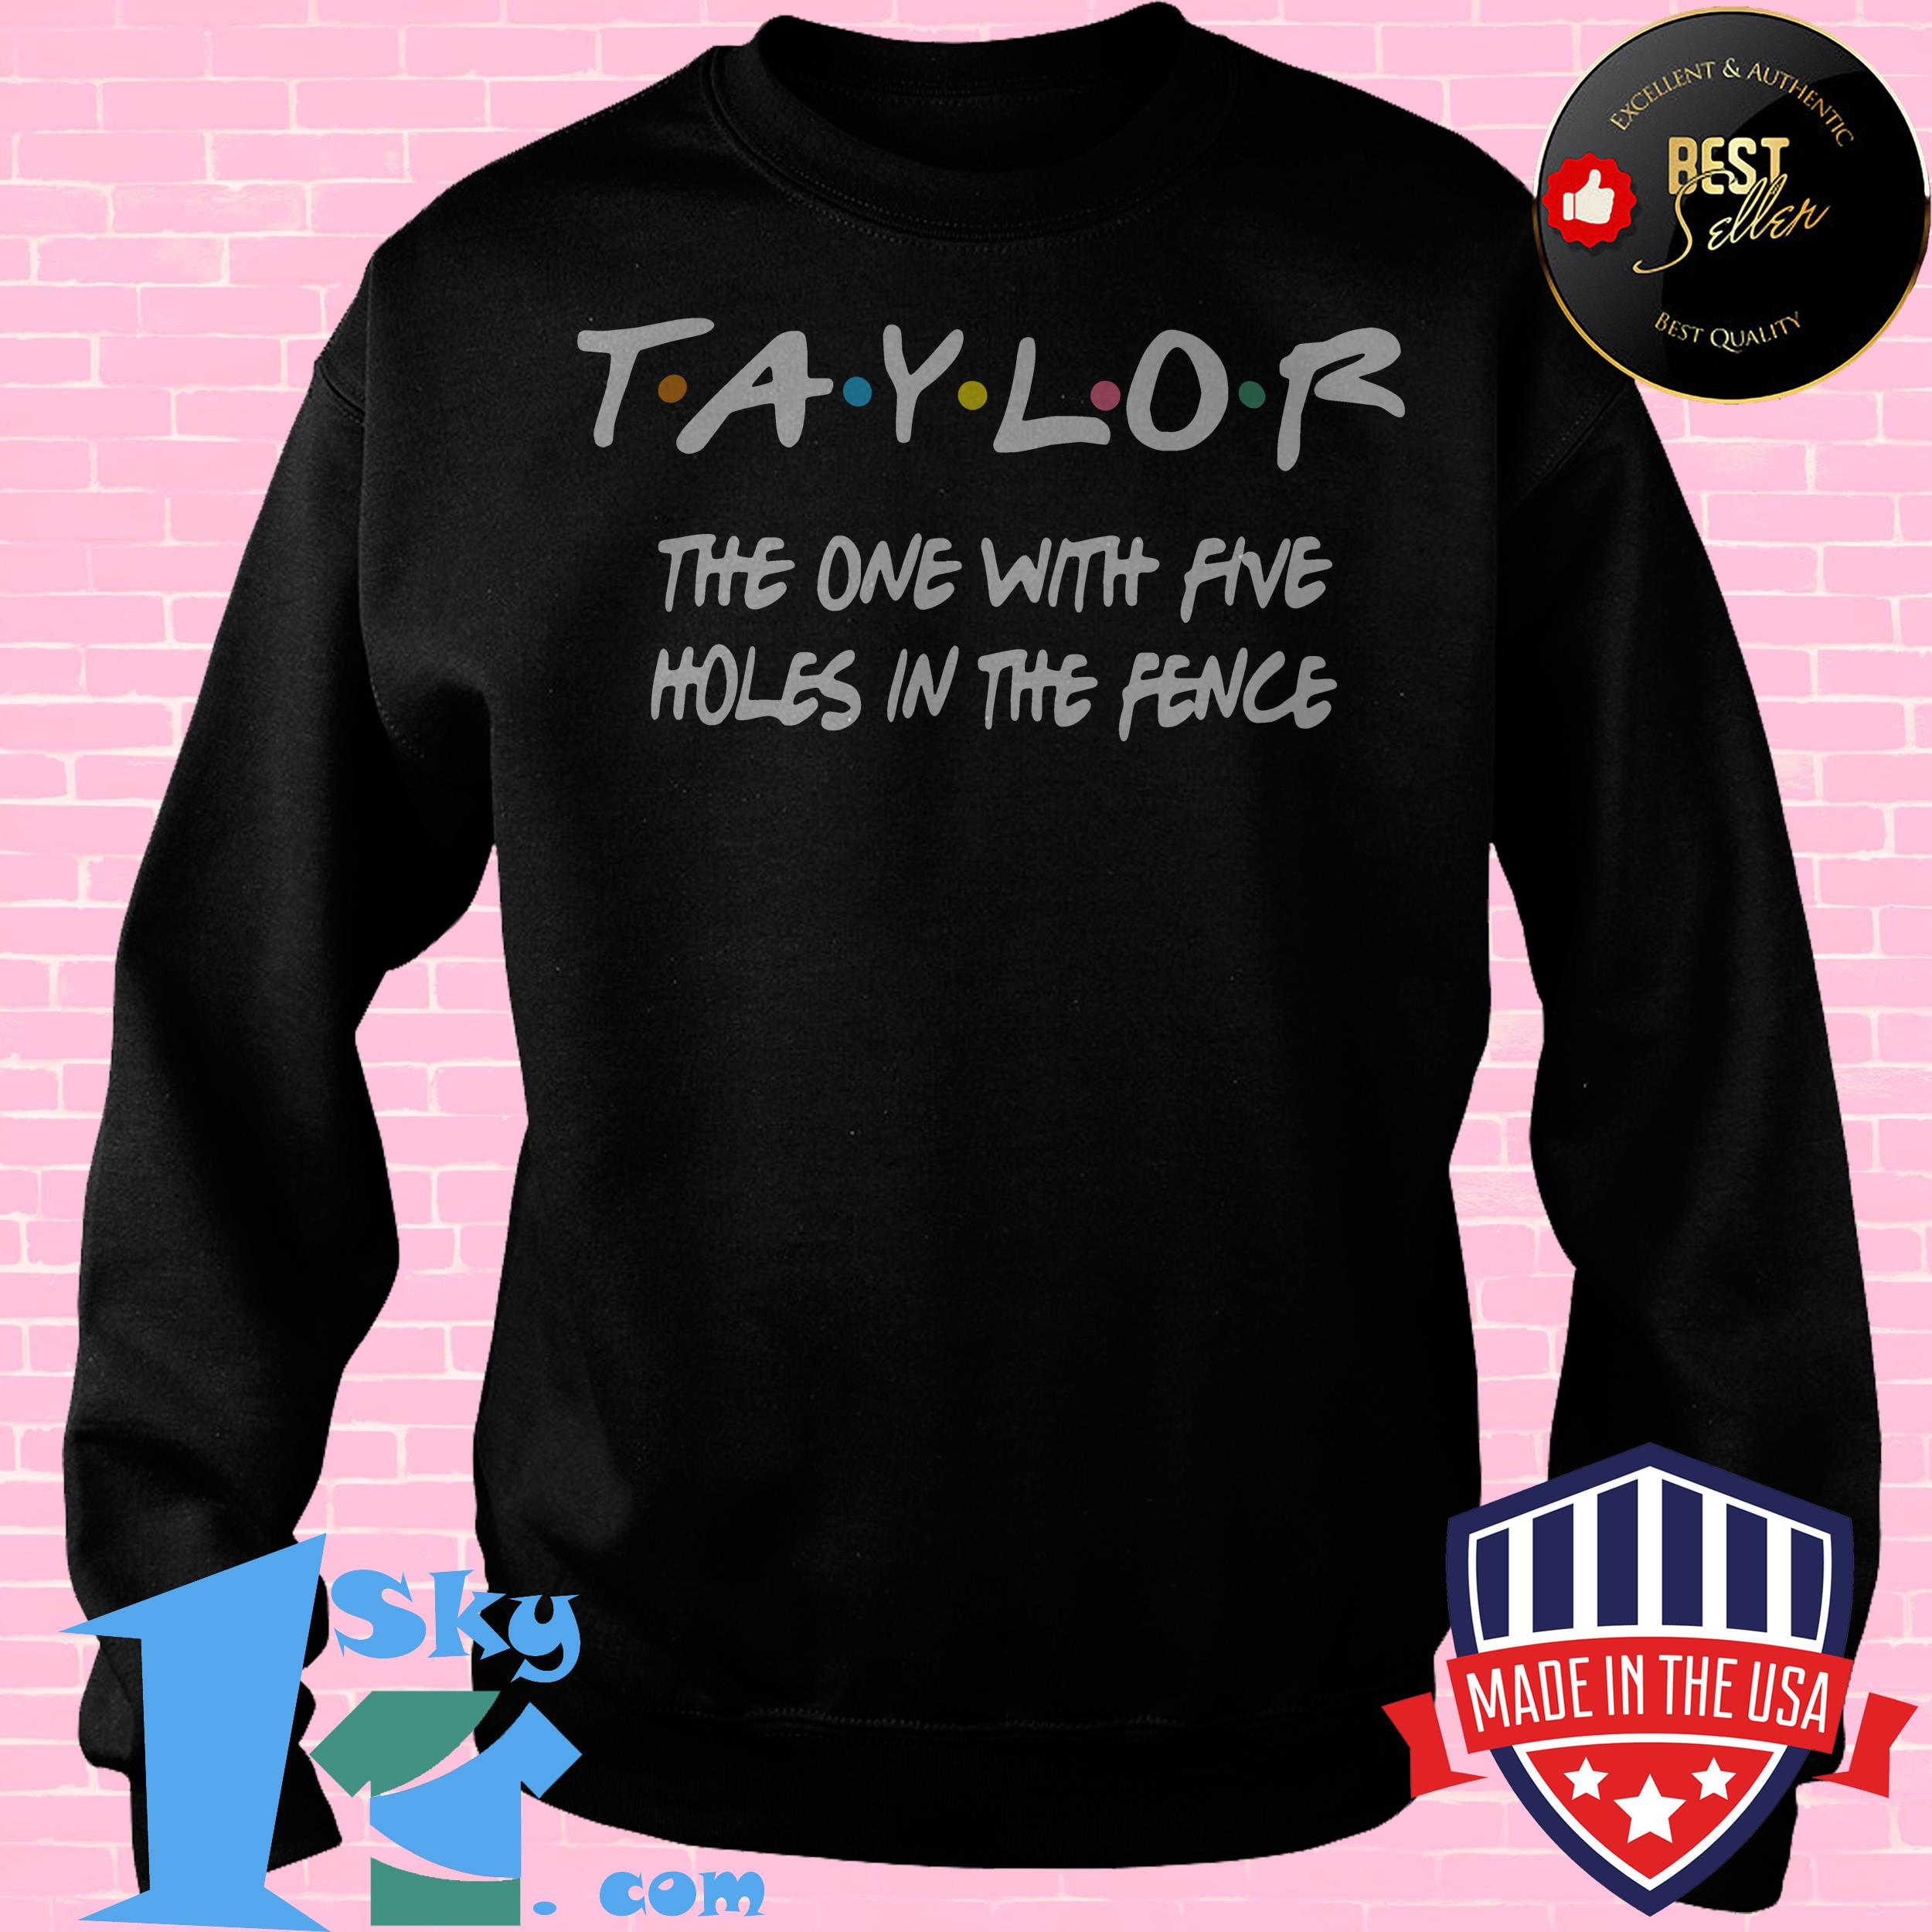 taylor swift the one with five holes in the fence sweatshirt - Taylor Swift The One With Five Holes In The Fence shirt